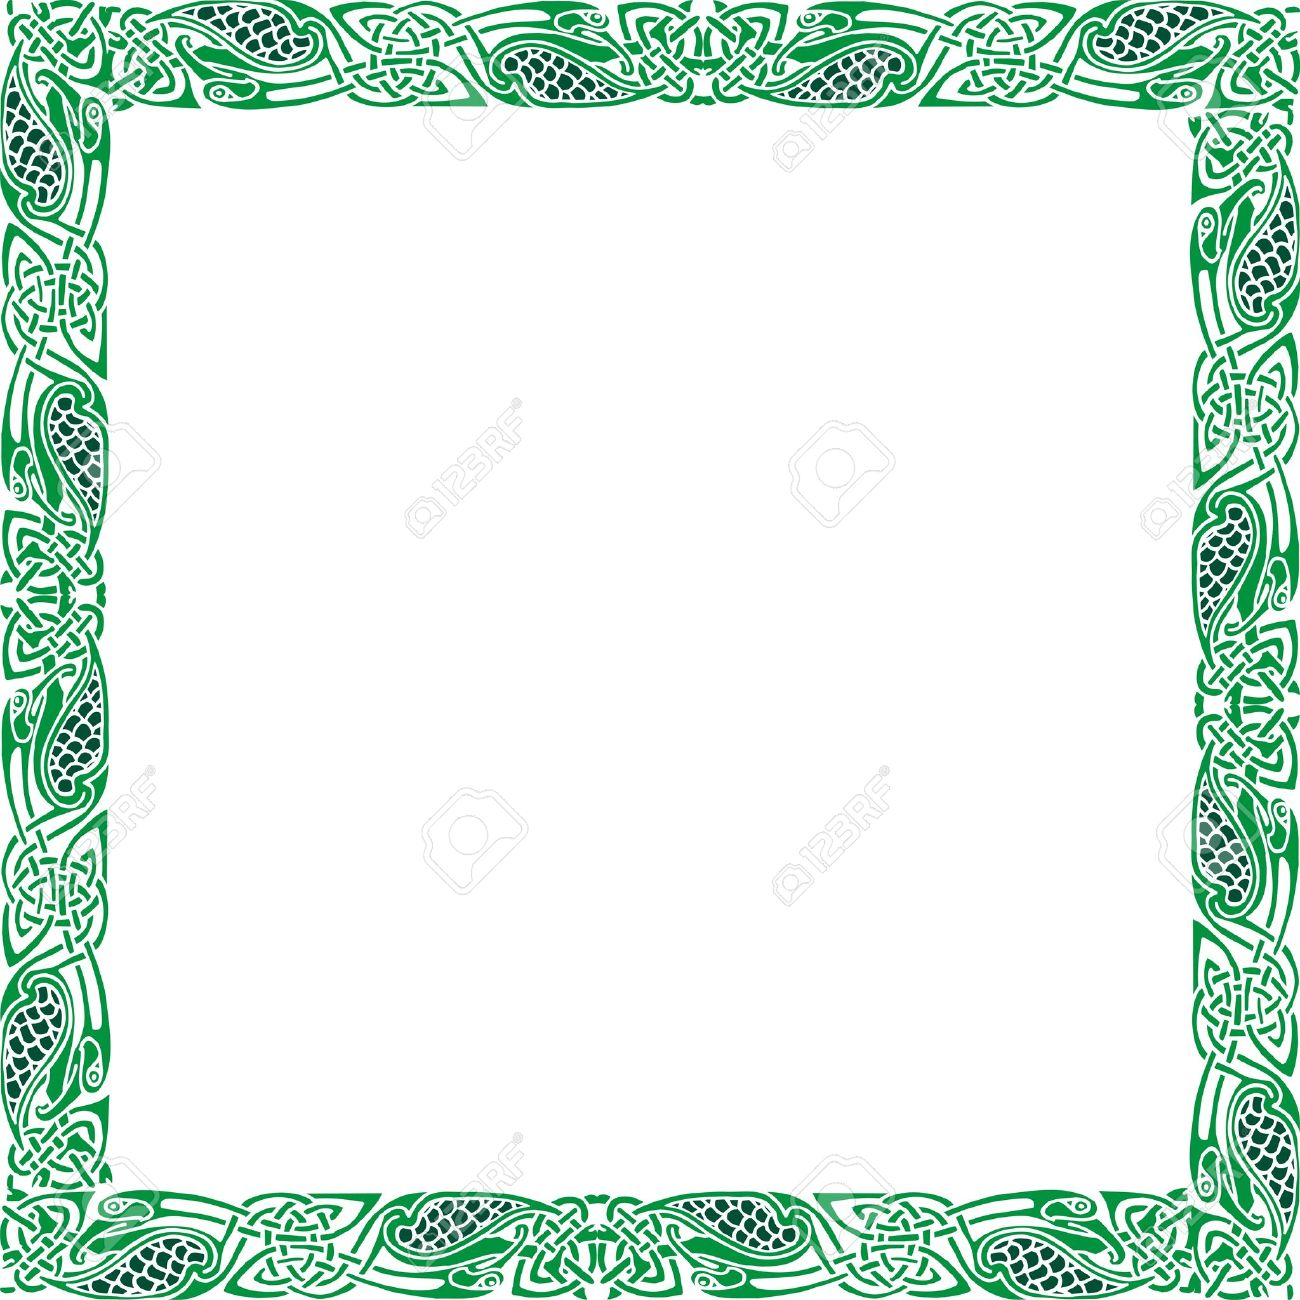 Abstract Celtic patterns with flower designs on the border Stock Photo - 11941628